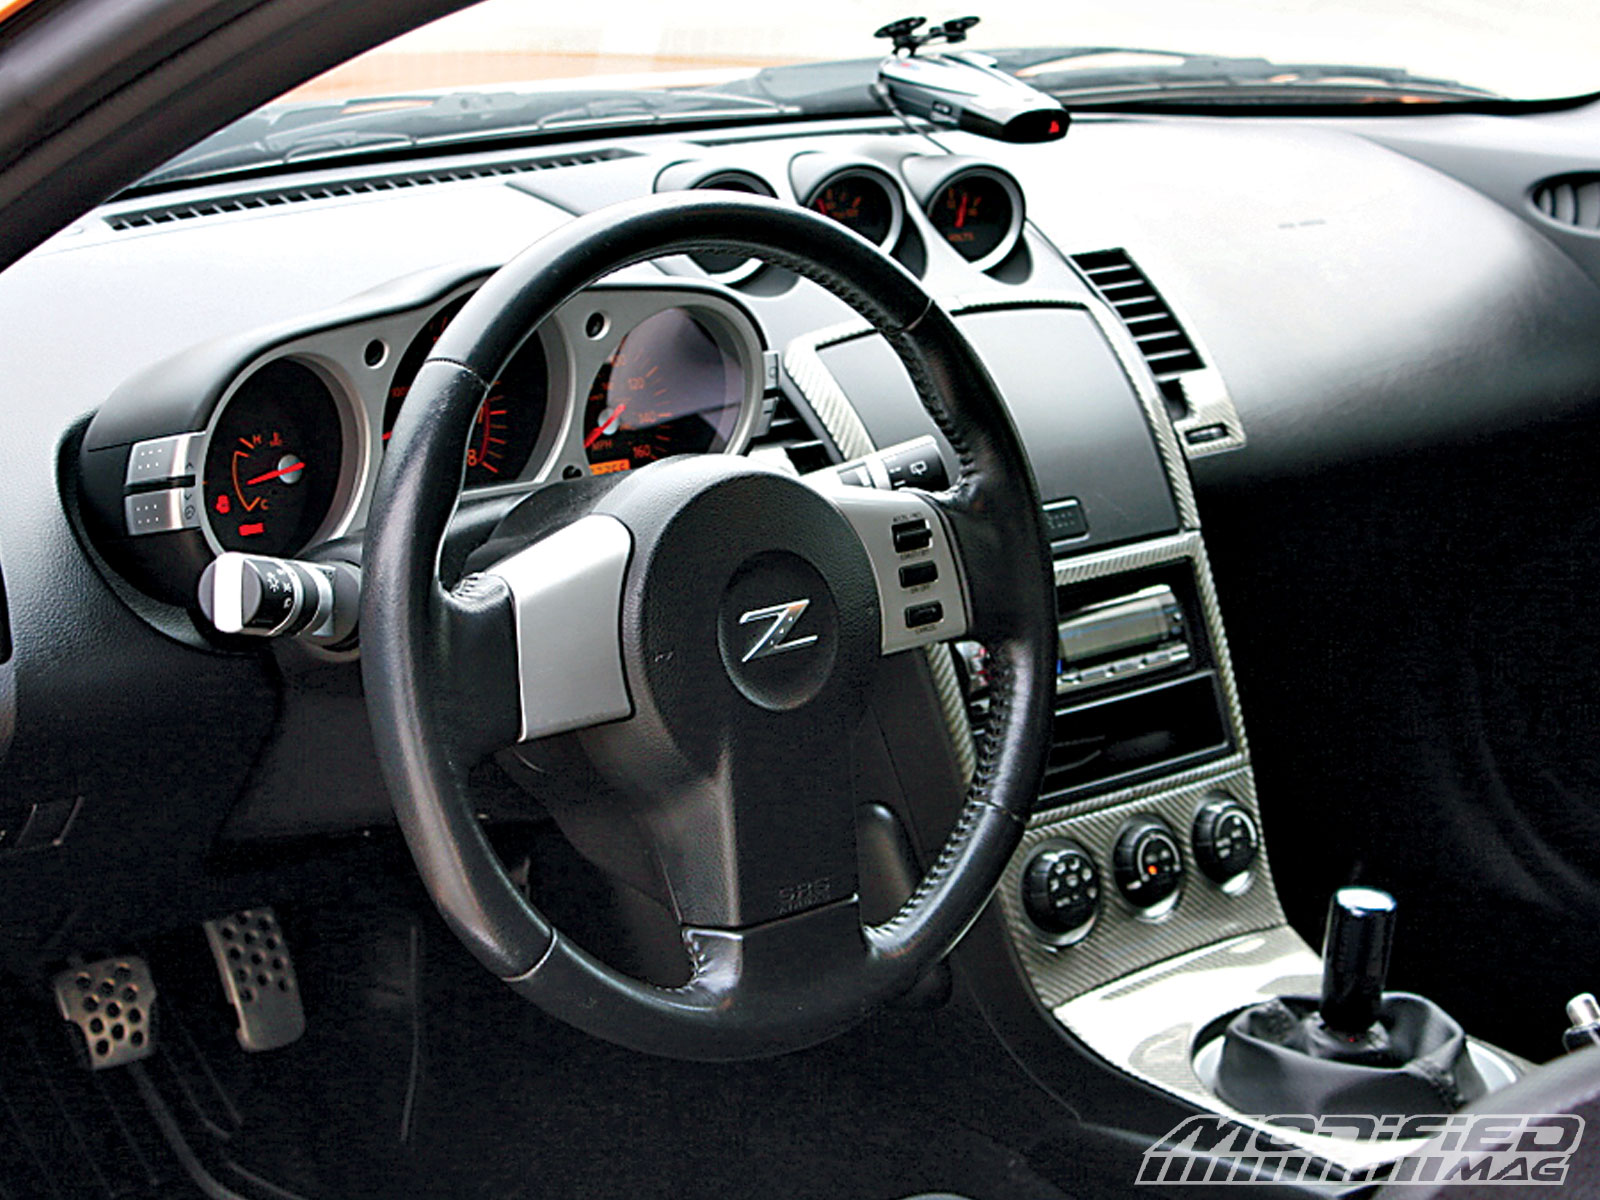 2004 nissan 350z automatic interior images hd cars wallpaper nissan 350z review and photos nissan 350z interior vanachro images vanachro Image collections